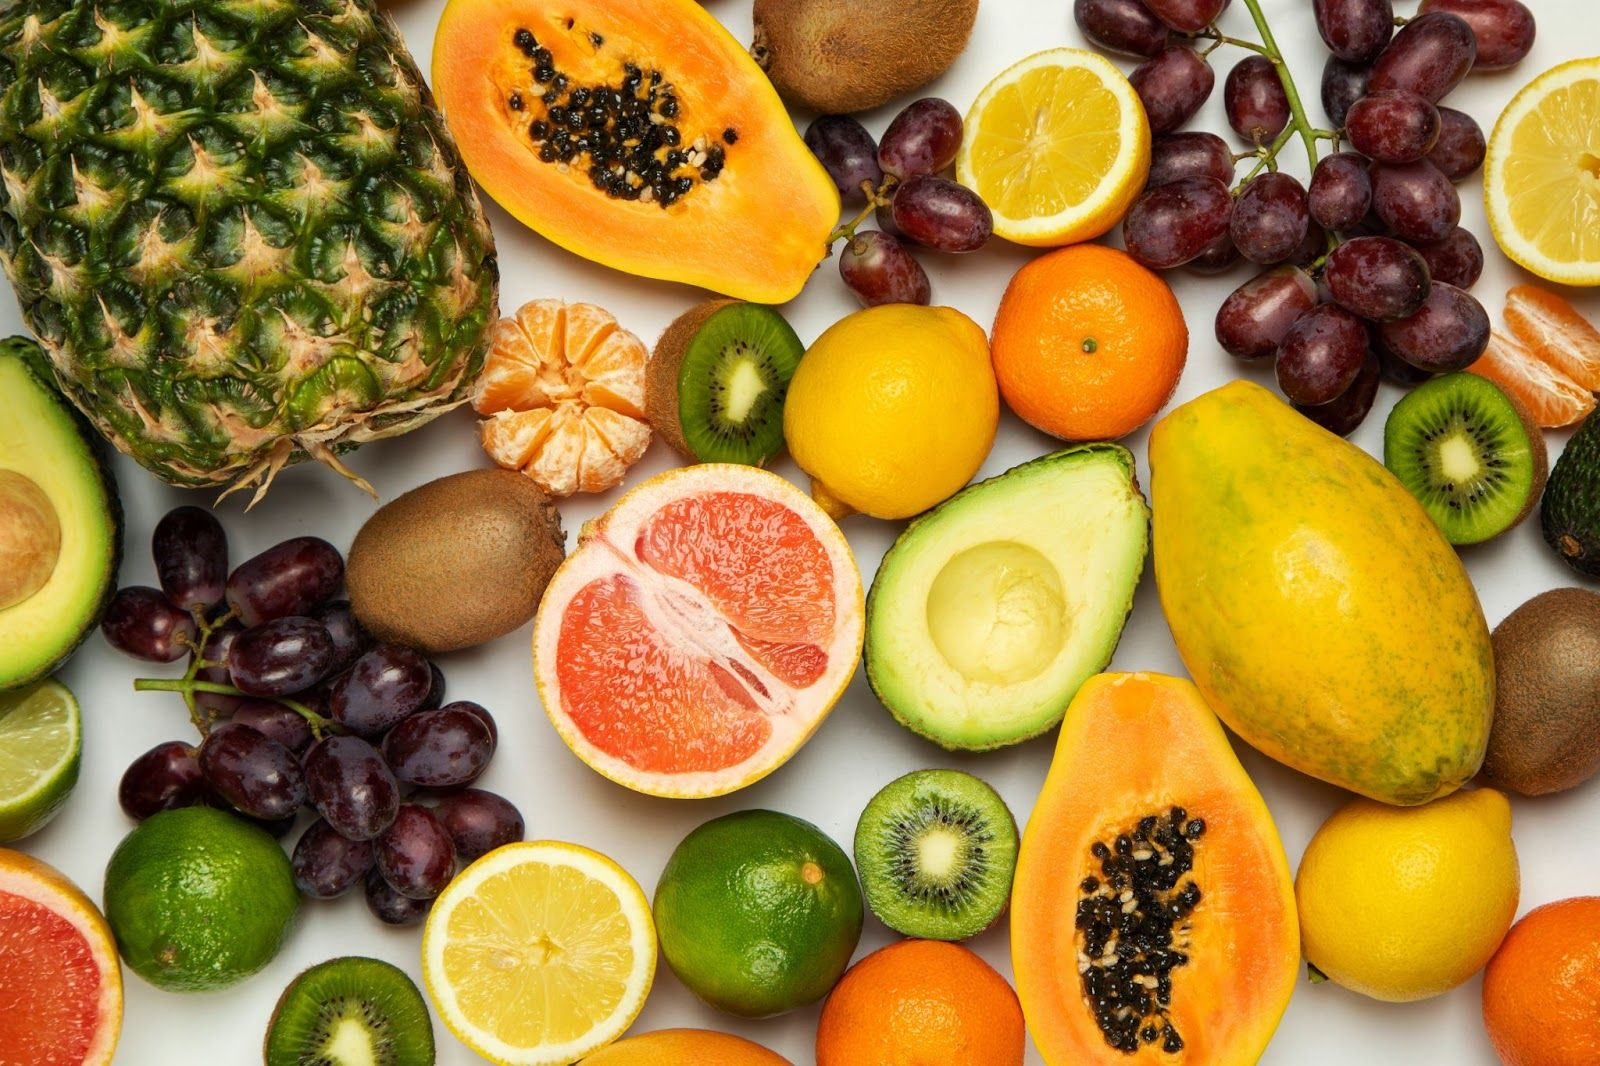 Fruits to prevent sun damage